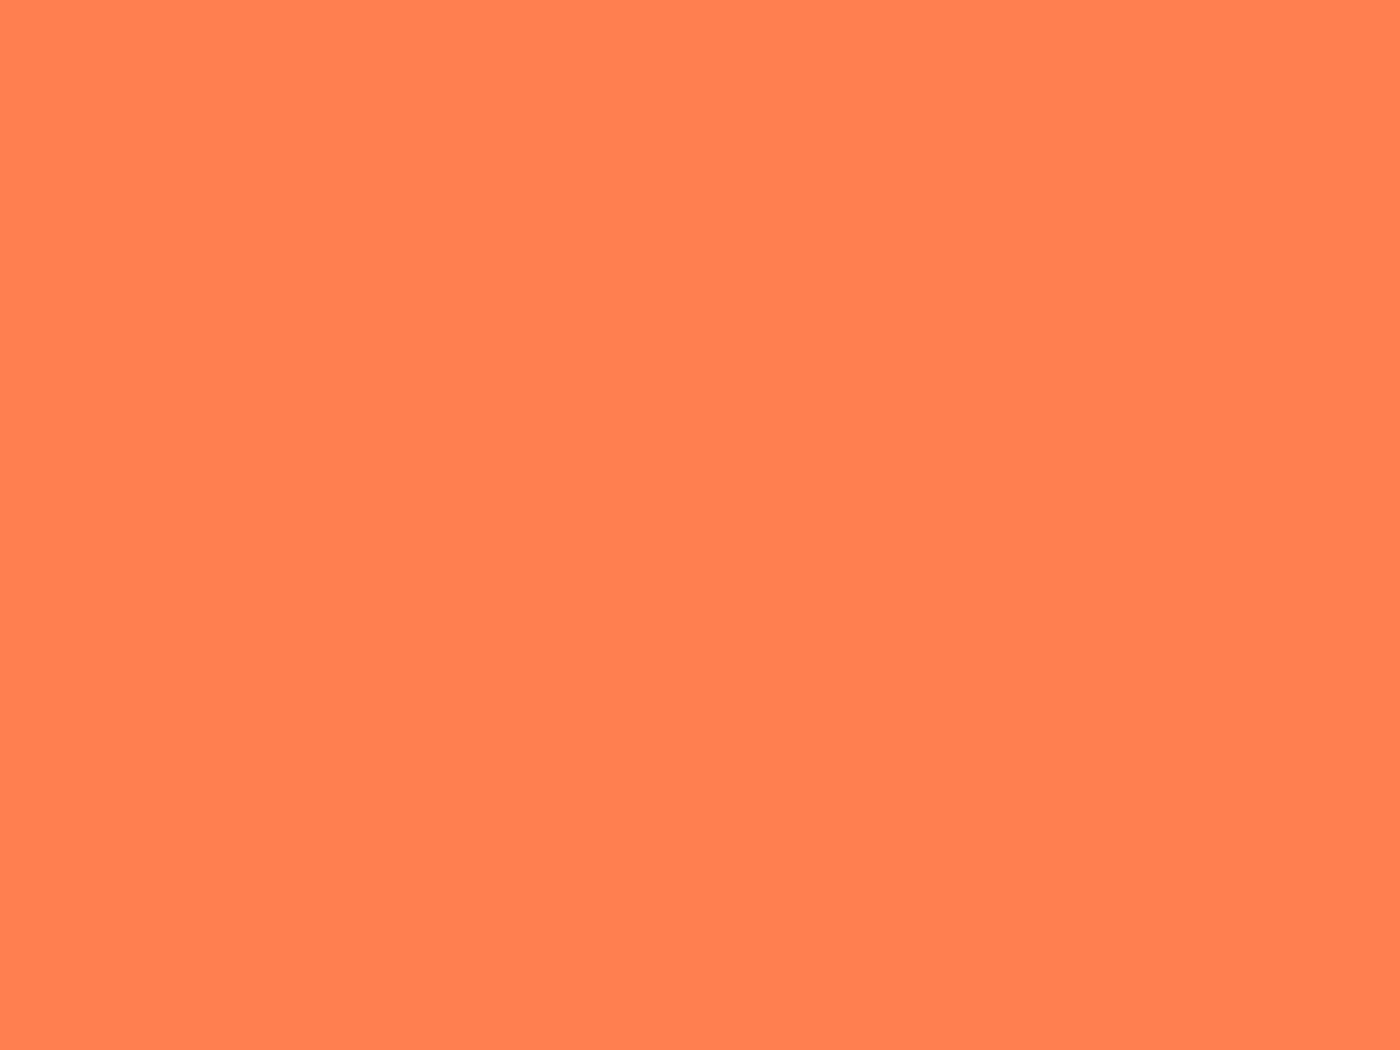 1400x1050 Coral Solid Color Background